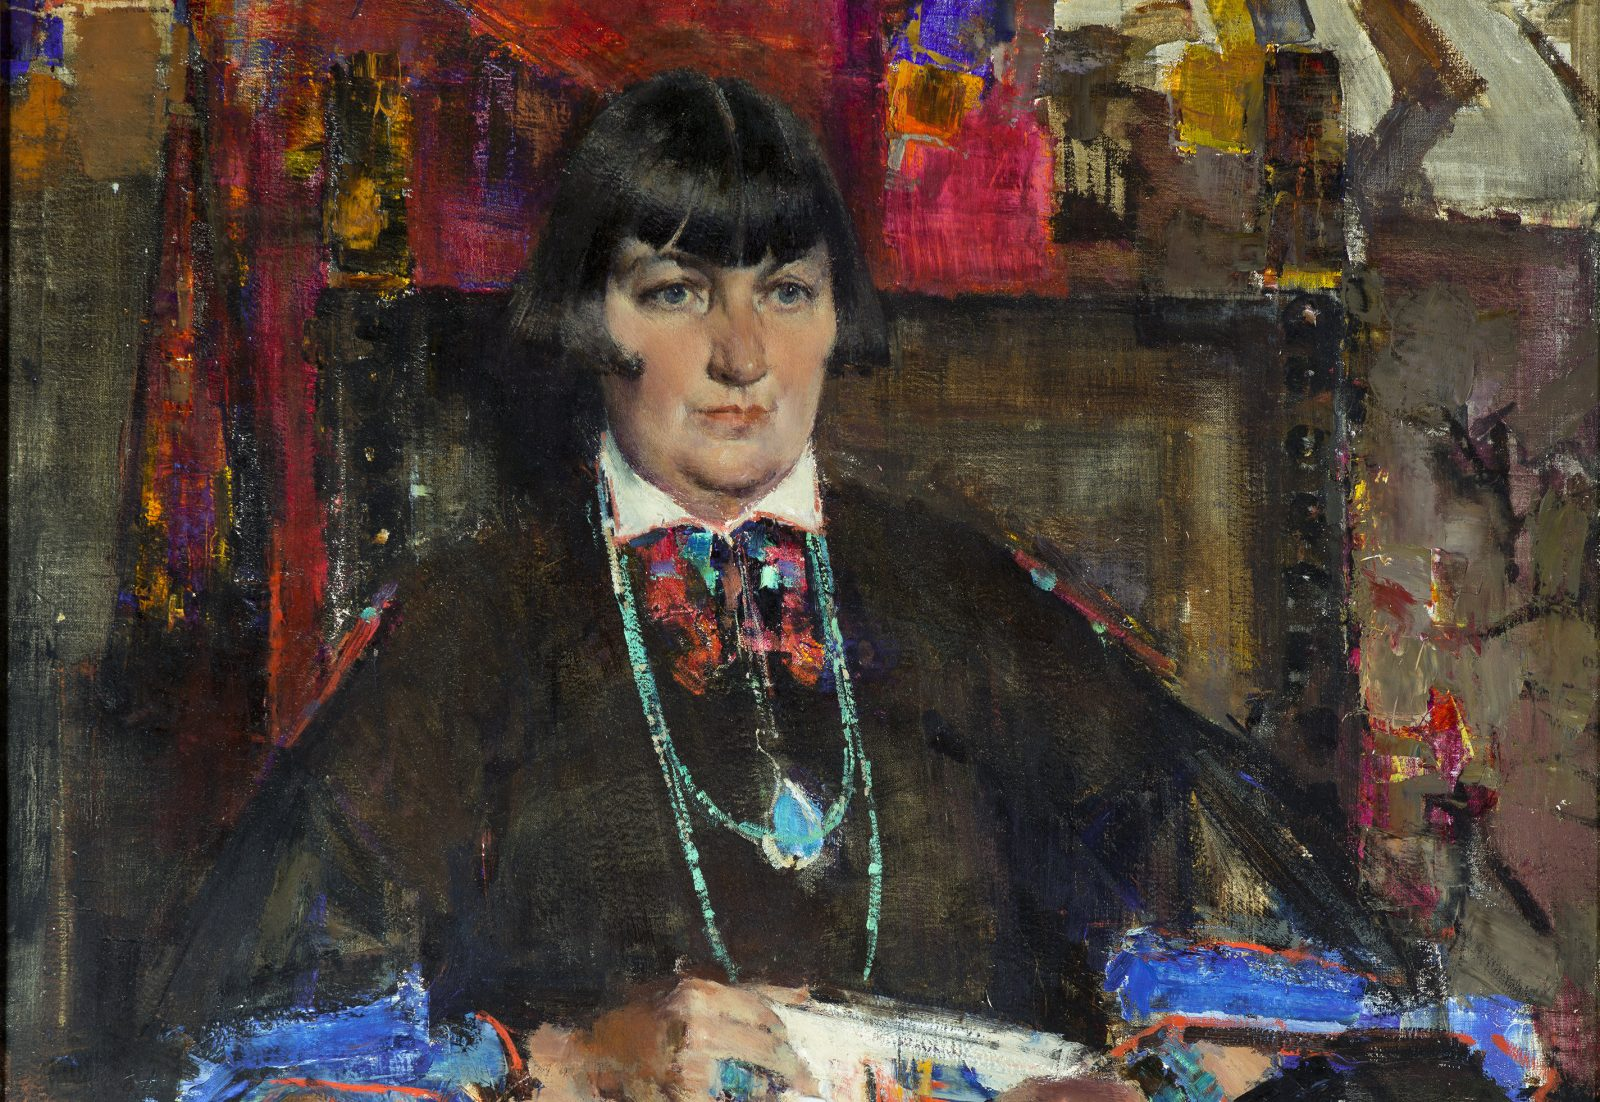 Nicolai Ivanovich Fechin's 1927 oil portrait of Buffalo-born patron Mabel Dodge Luhan is on view in the Burchfield Penney Art Center's exhibition 'Mabel Dodge Luhan & Company: American Moderns and the West.'